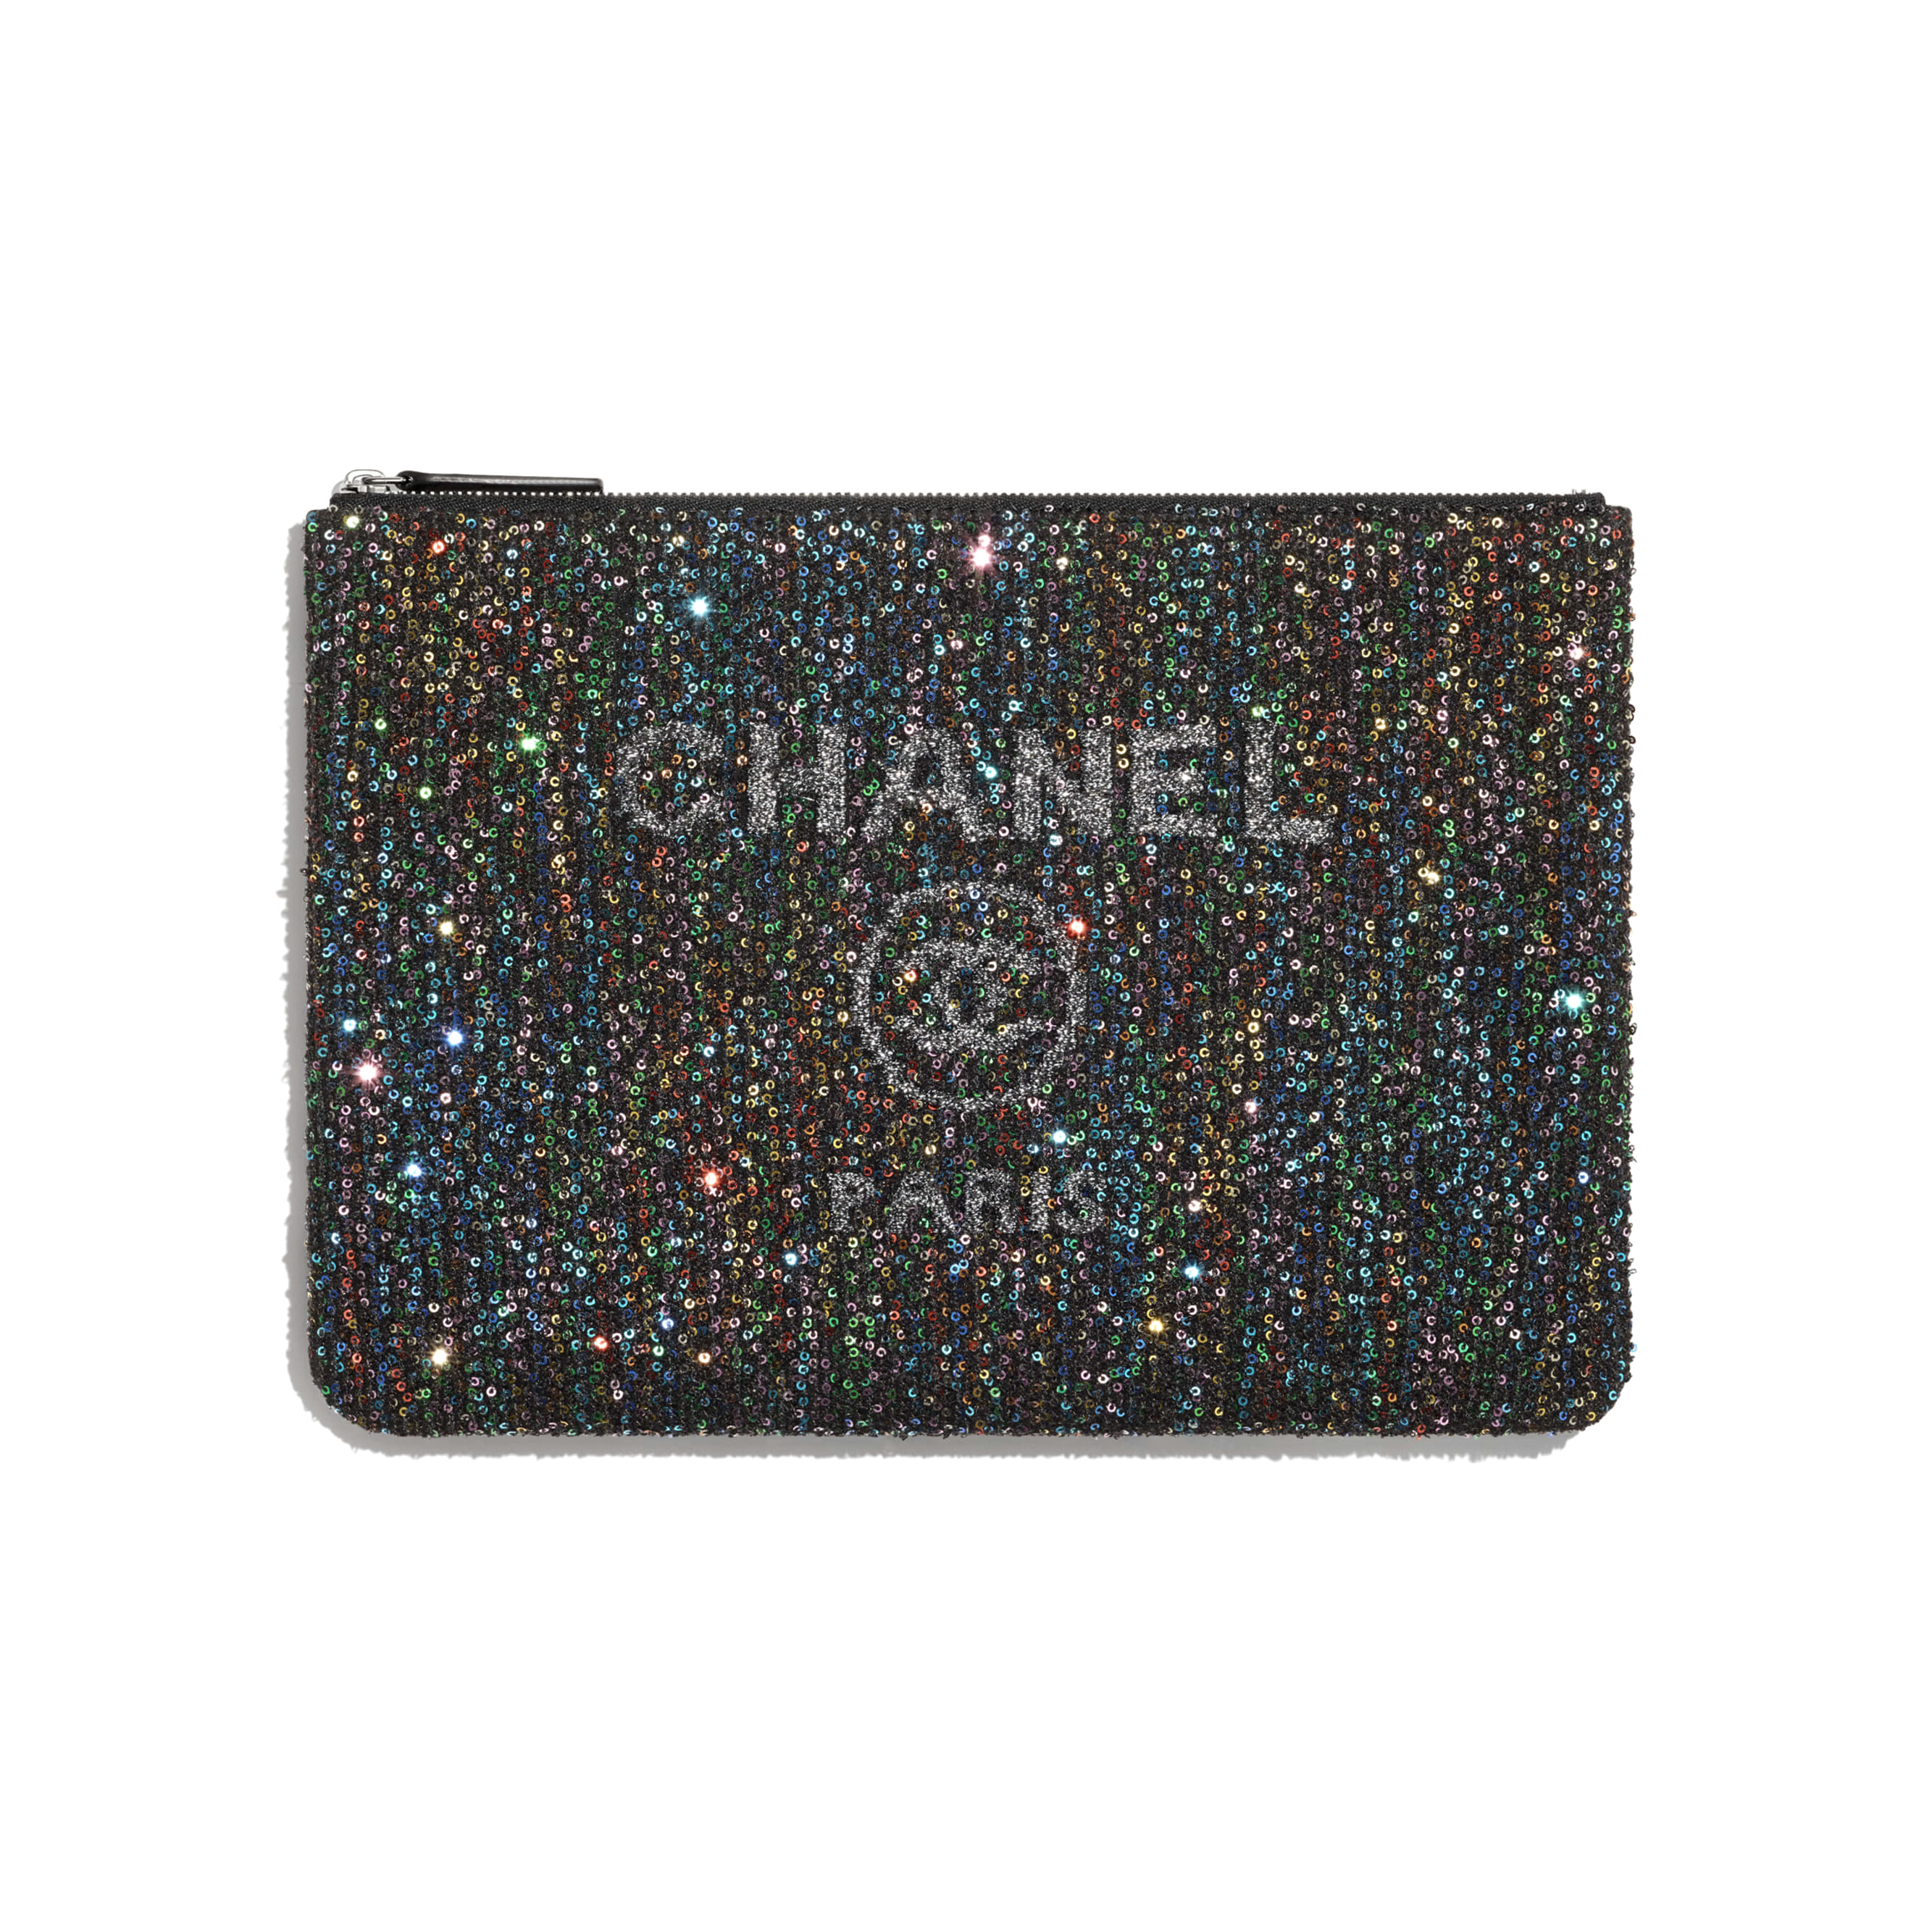 Pouch - Black - Viscose, Calfskin, Sequins & Silver-Tone Metal - CHANEL - Default view - see standard sized version